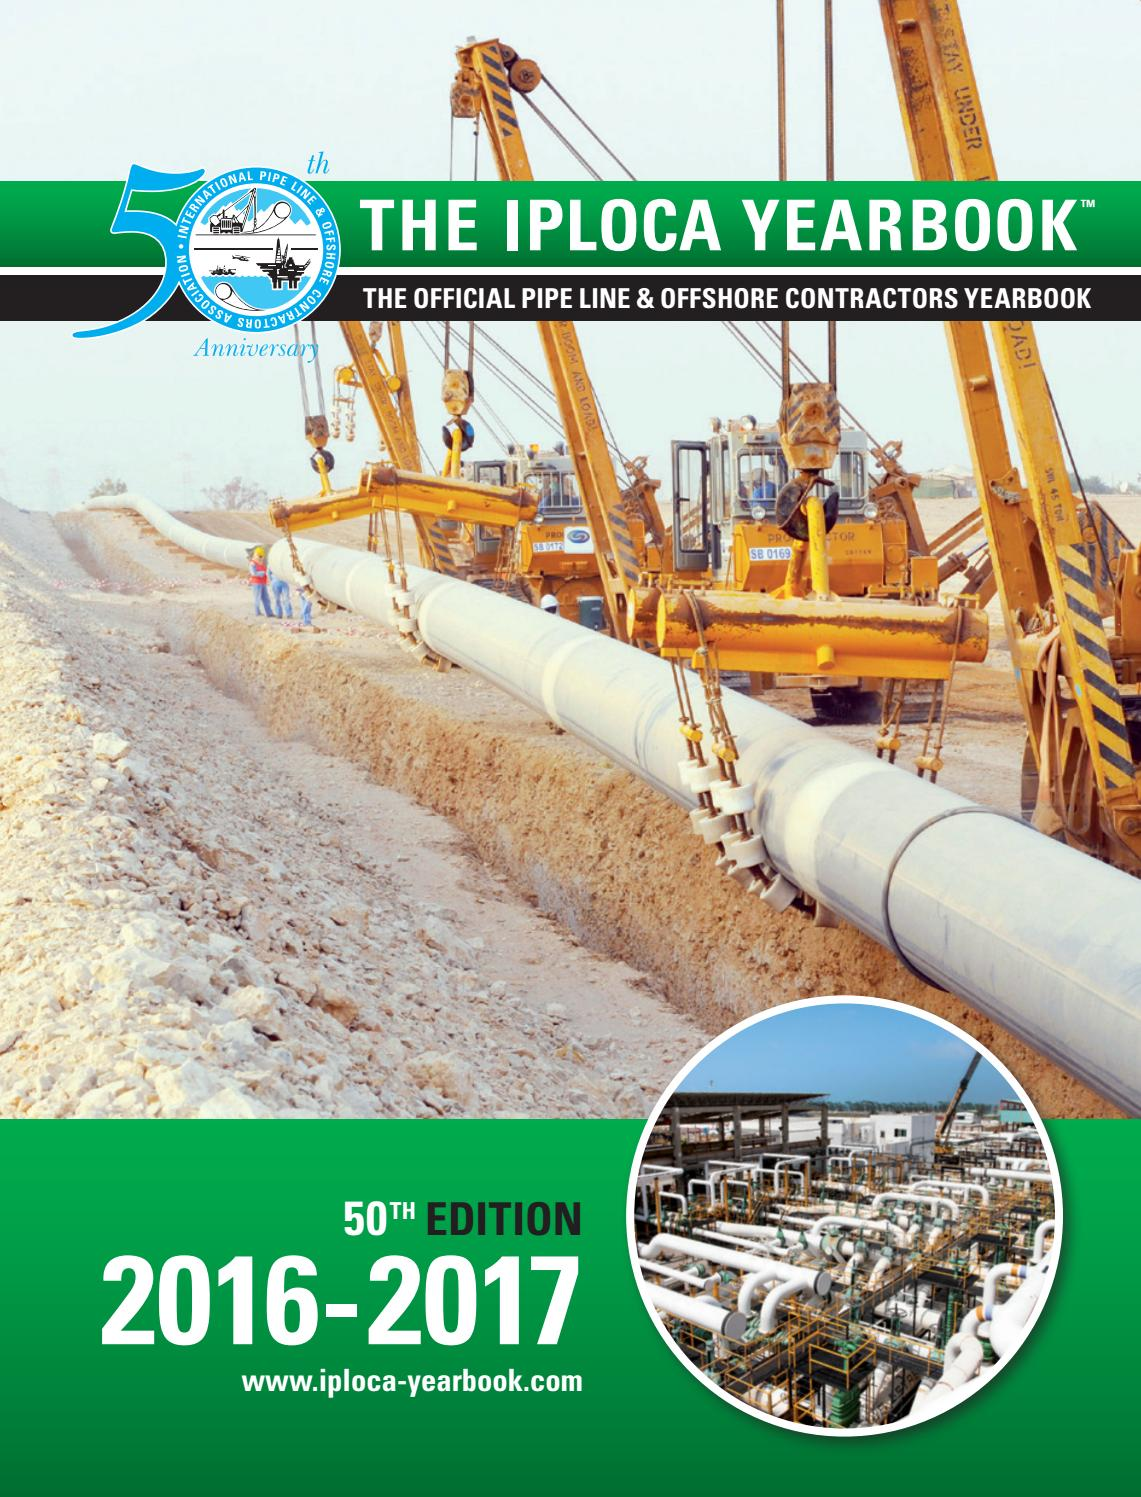 IPLOCA Yearbook 2016-2017 by Pedemex BV - issuu 37b5ee86d10a